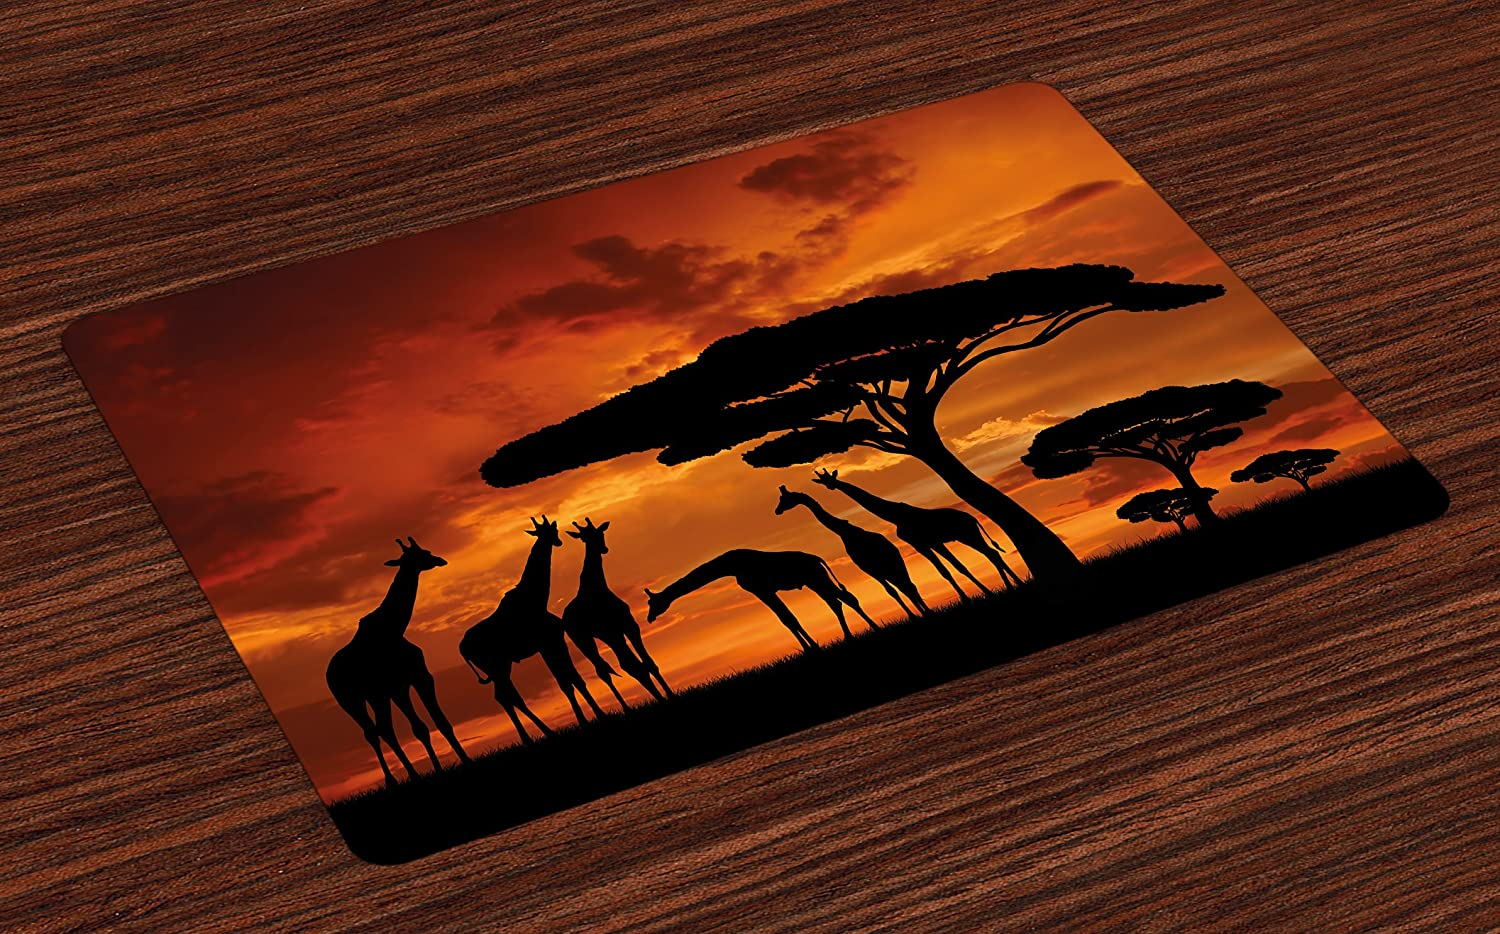 Burnt Orange and Black Lunarable Africa License Plate High Gloss Aluminum Novelty Plate 5.88 X 11.88 Safari Animal with Giraffe Crew with Majestic Tree at Sunrise in Kenya